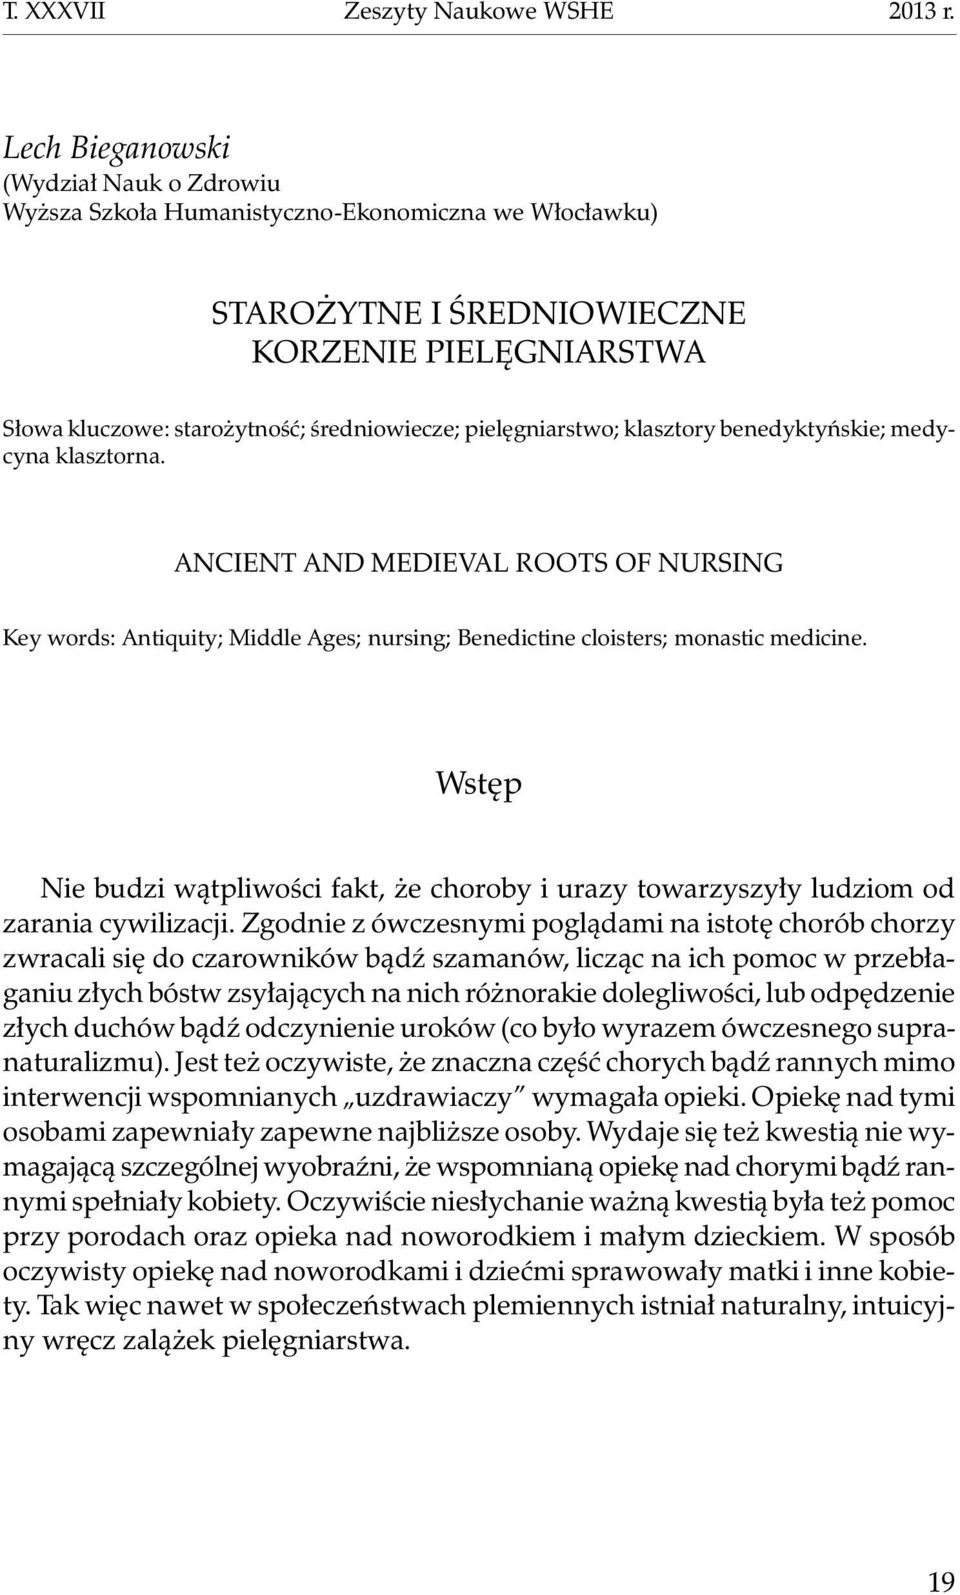 pielęgniarstwo; klasztory benedyktyńskie; medycyna klasztorna. Ancient and medieval roots of nursing Key words: Antiquity; Middle Ages; nursing; Benedictine cloisters; monastic medicine.